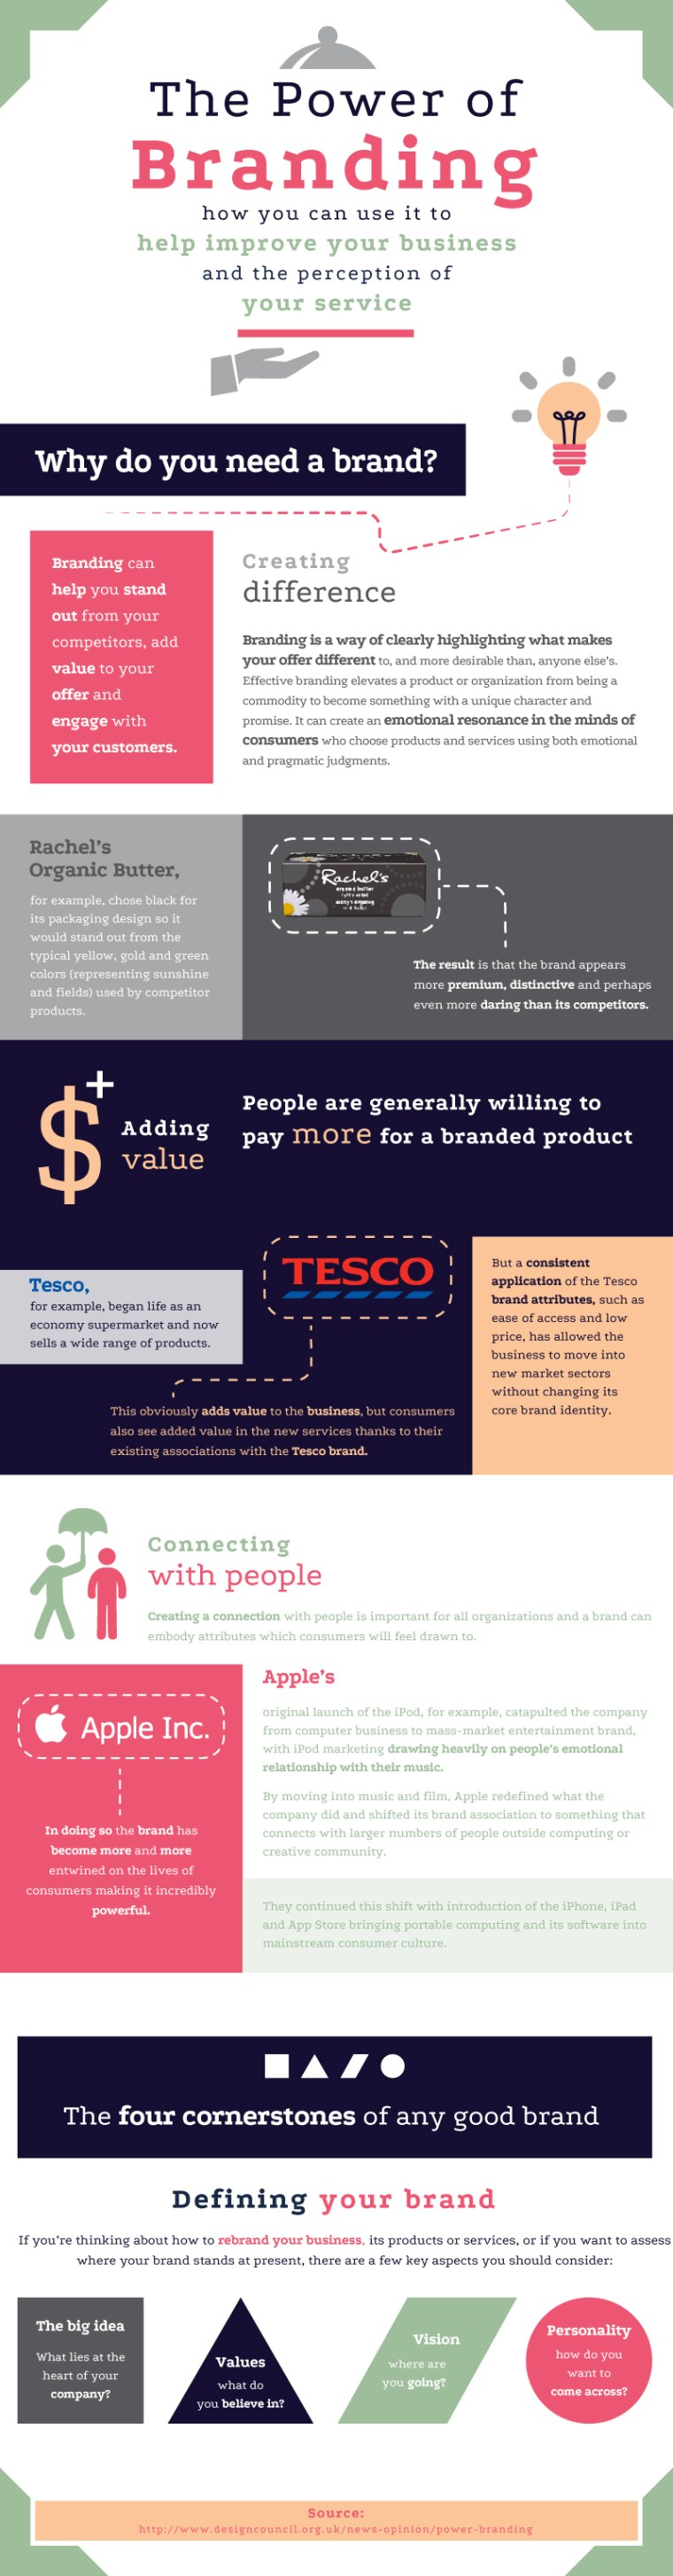 The Power of Branding infographic